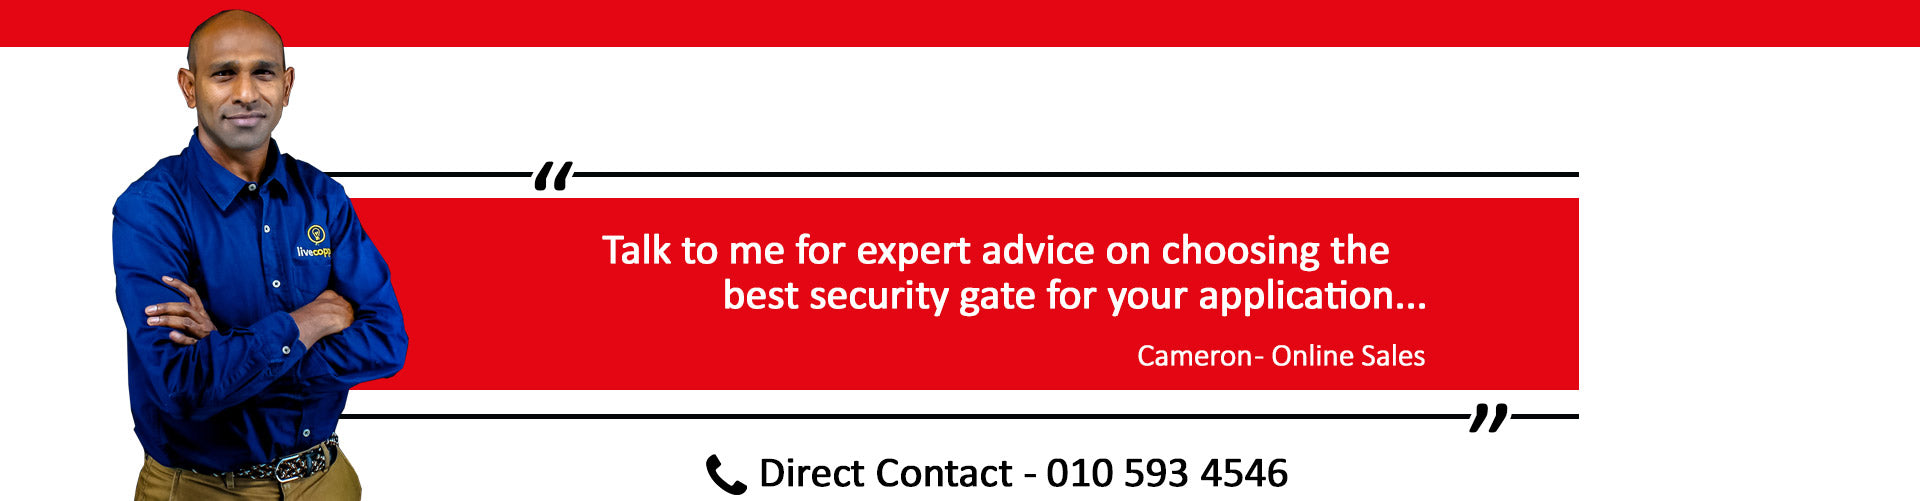 Talk to Cameron, our dedicated sales expert for advice on choosing the best security gate for your application